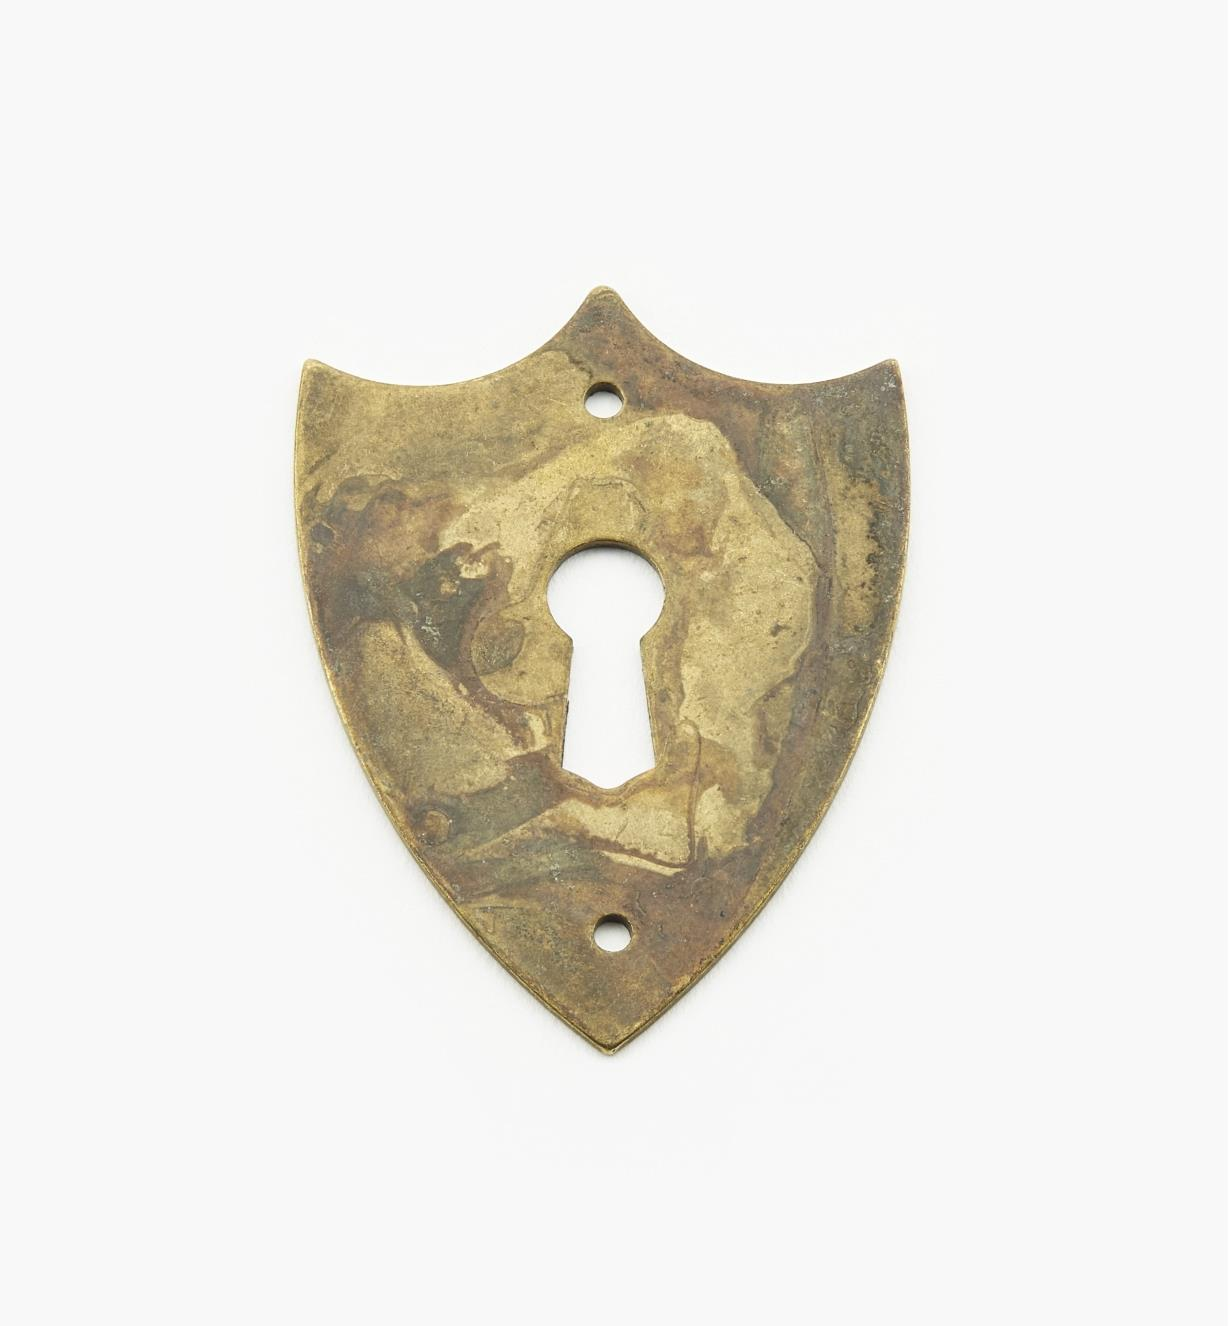 01A1923 - 42mm x 57mmOB Pressed Escutcheon